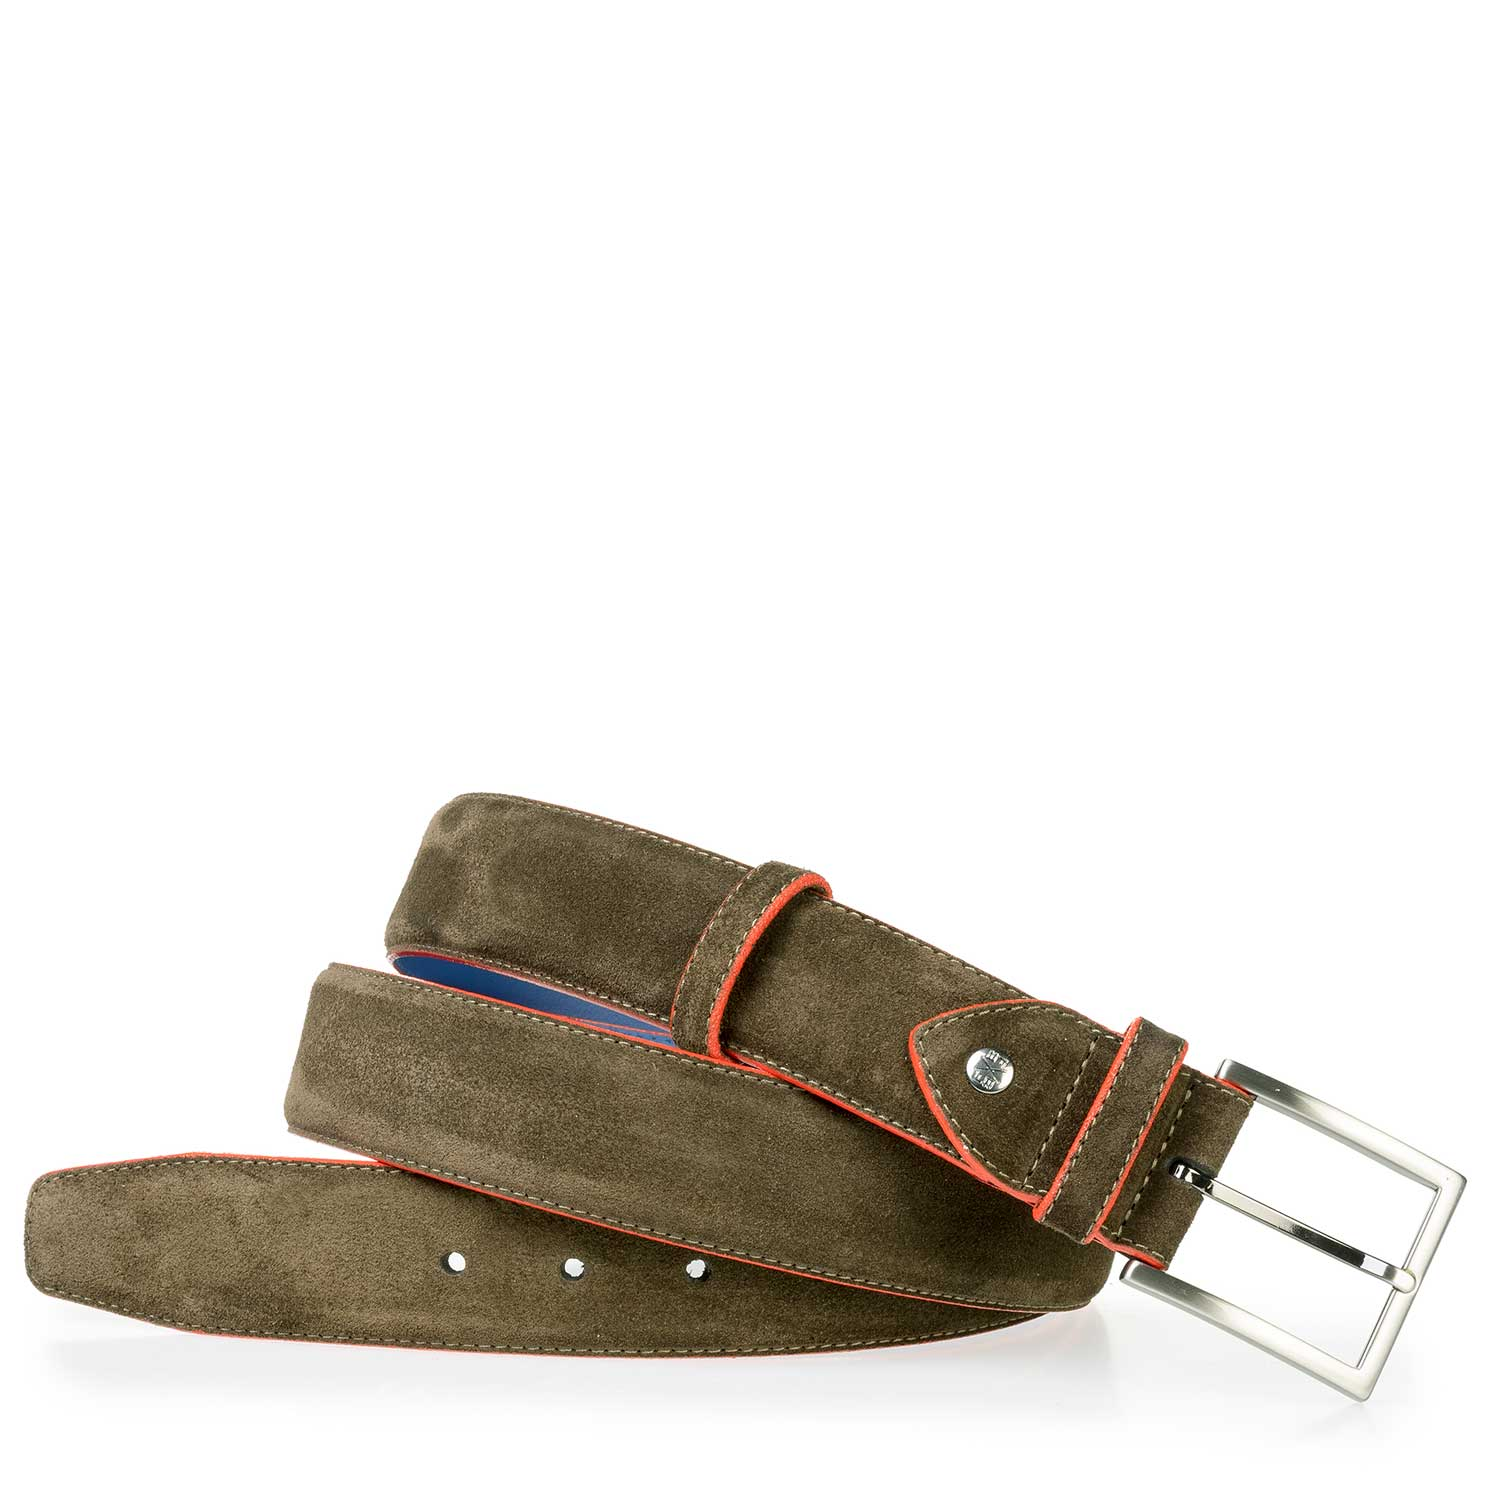 75037/16 - Olive green calf suede leather belt